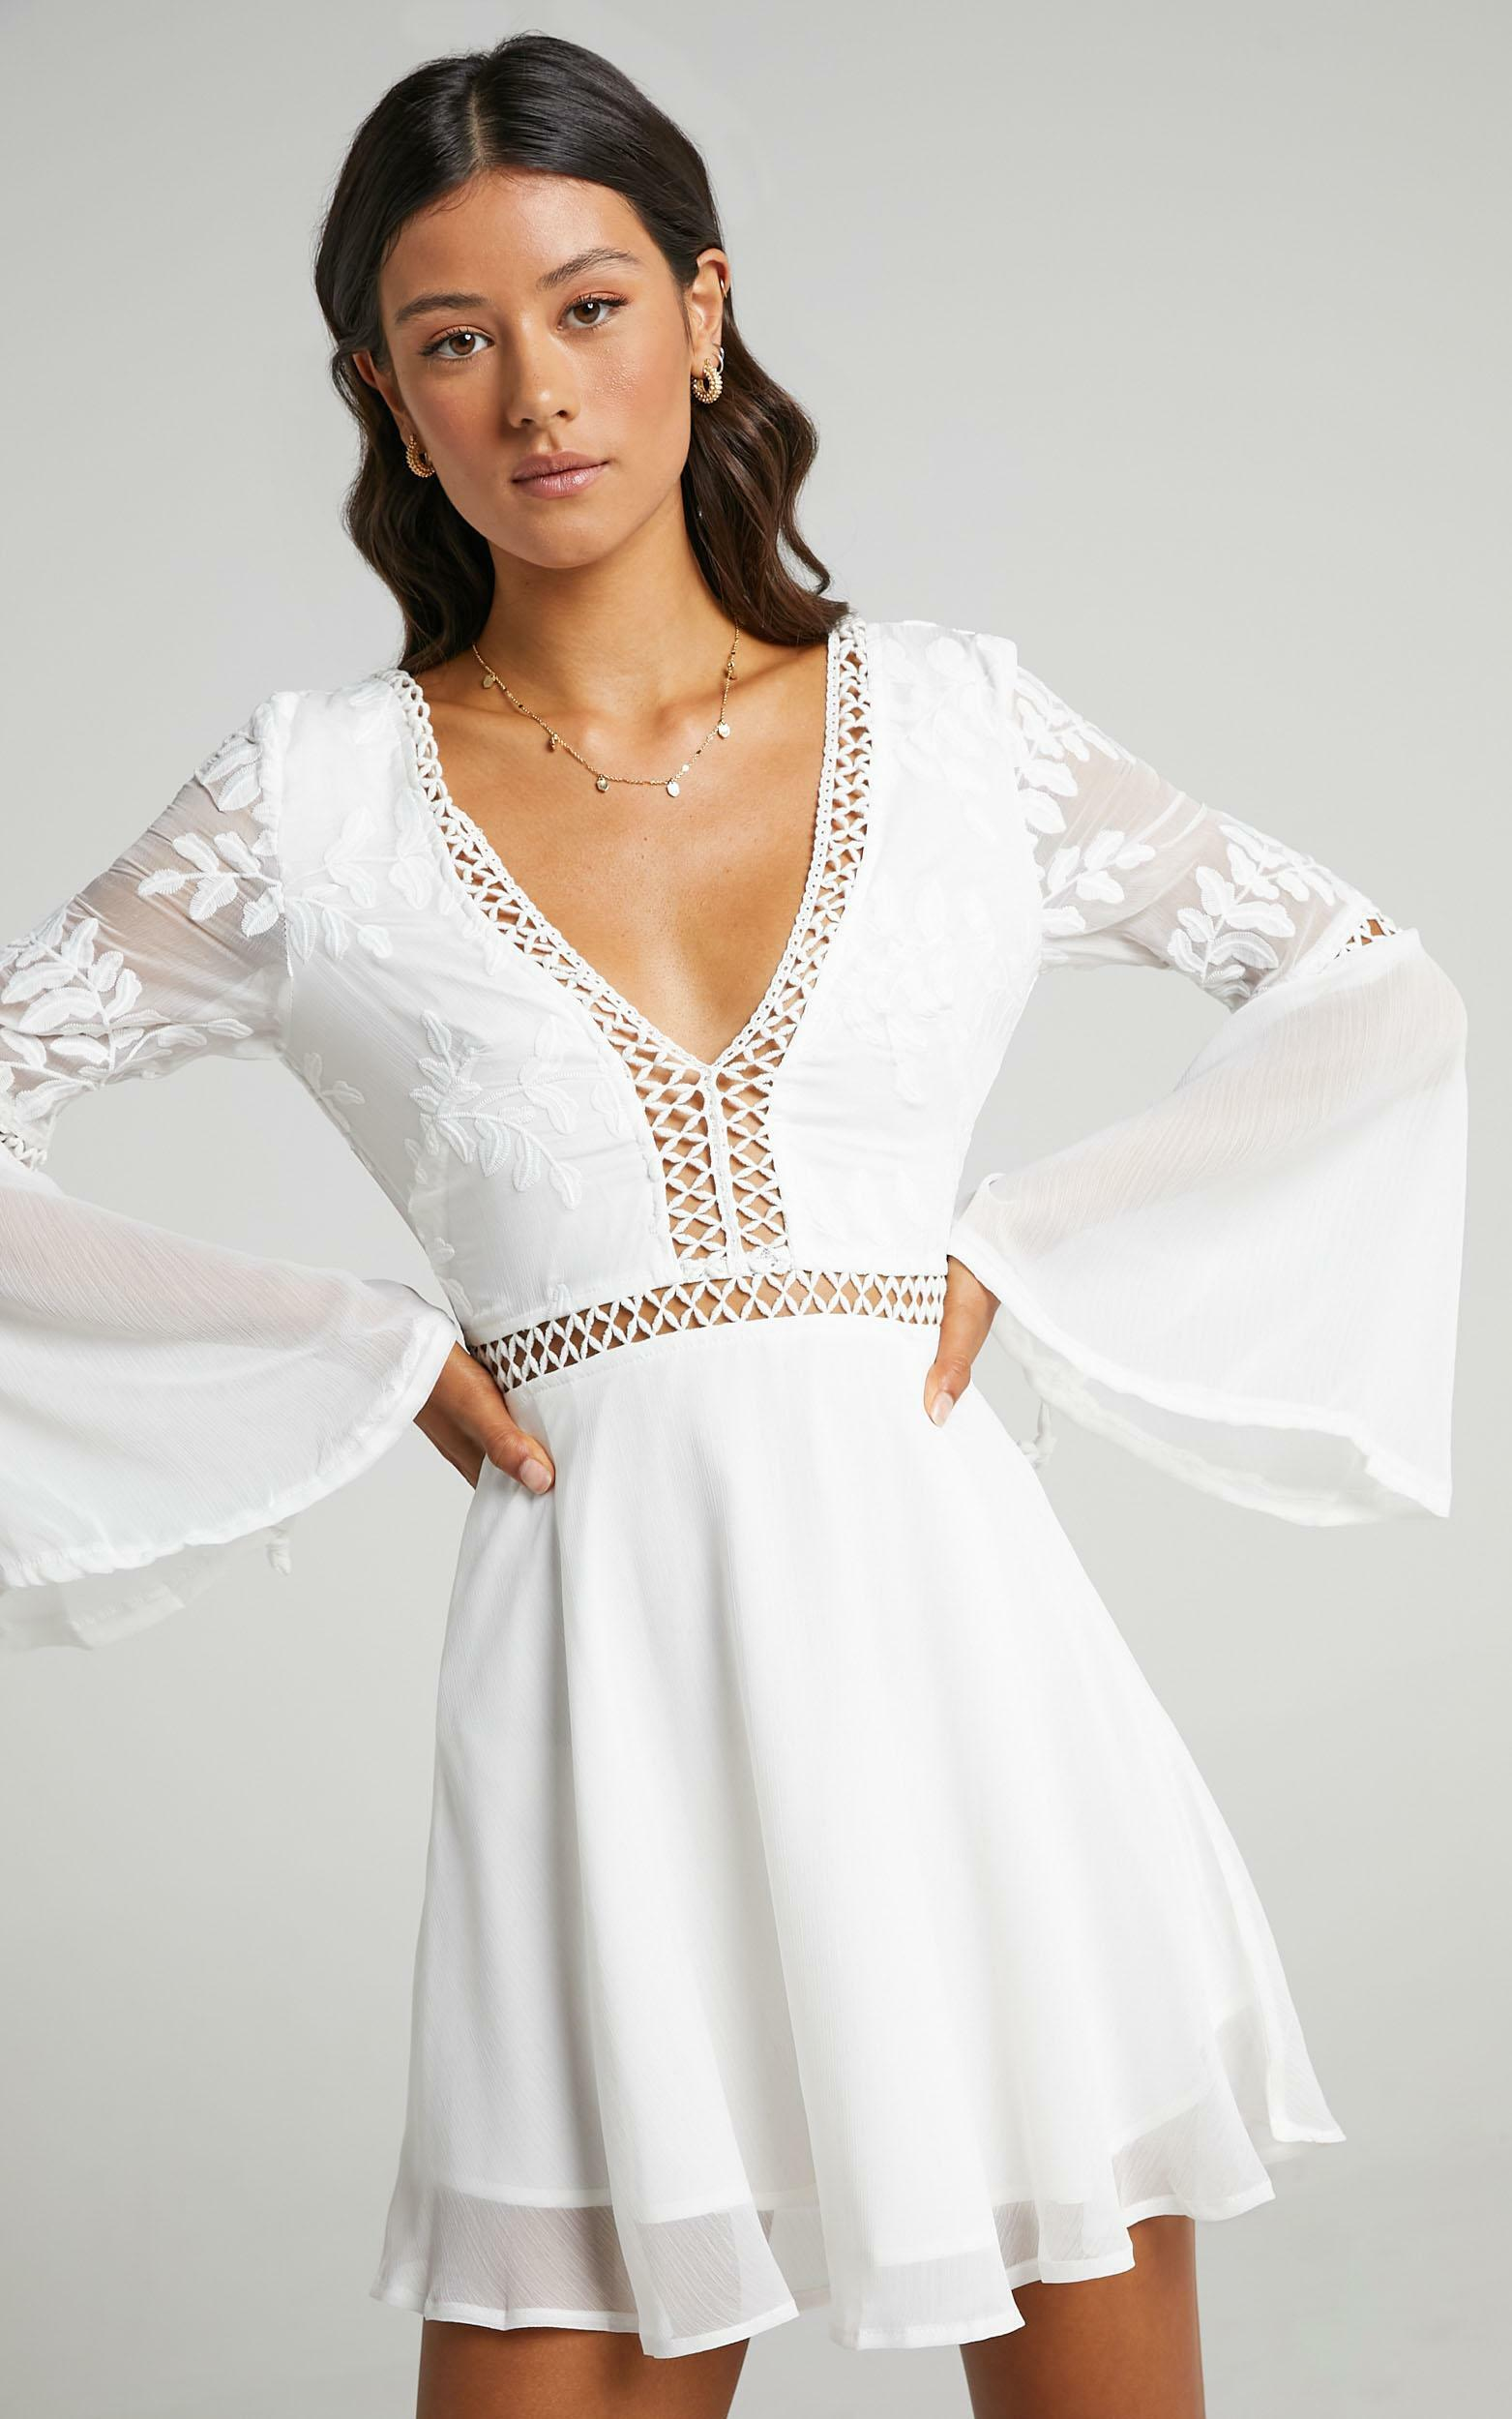 Stop Pretending Dress in White - 12, WHT2, hi-res image number null